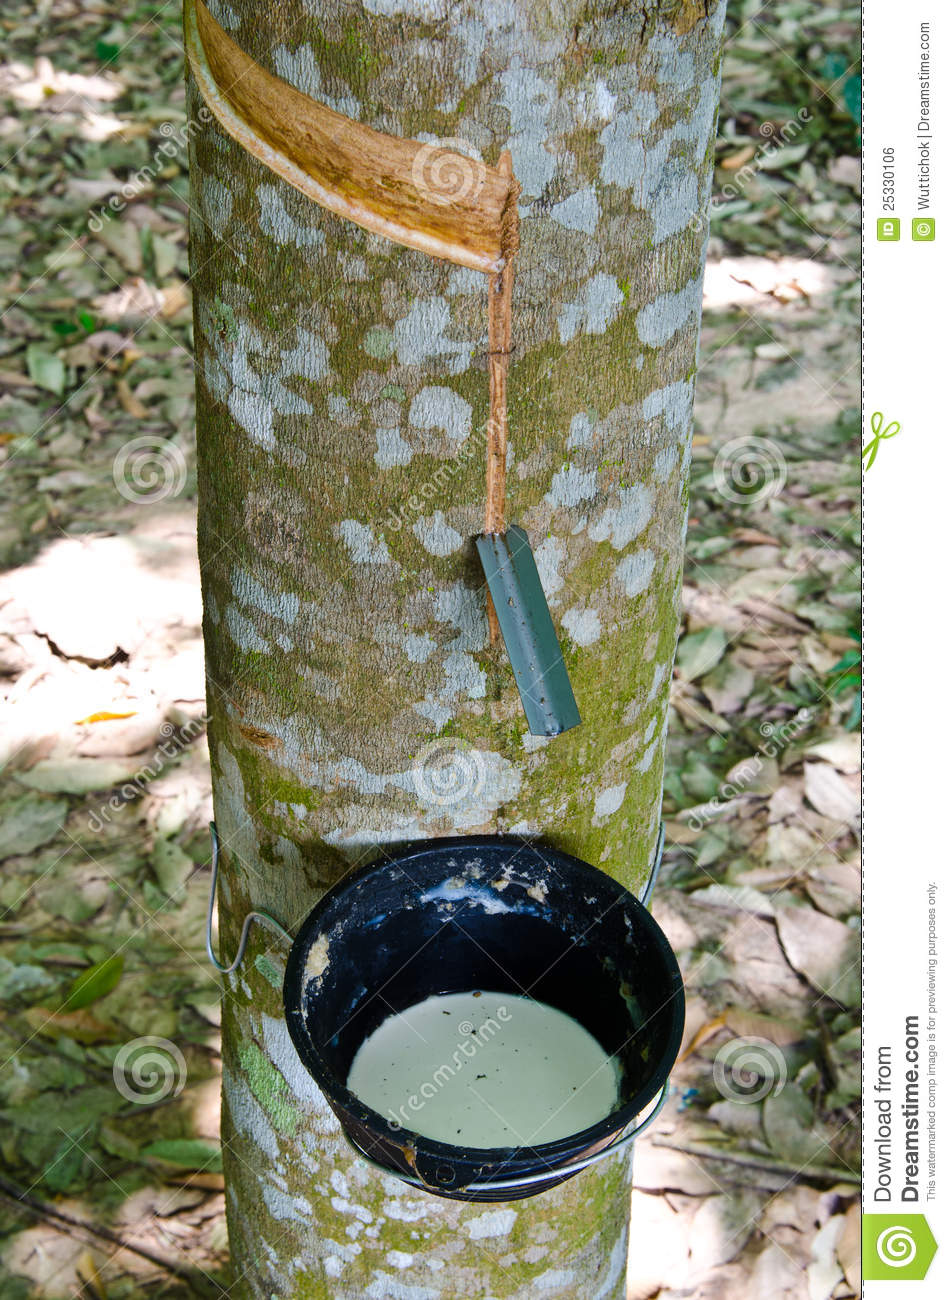 Tapping of latex rubber